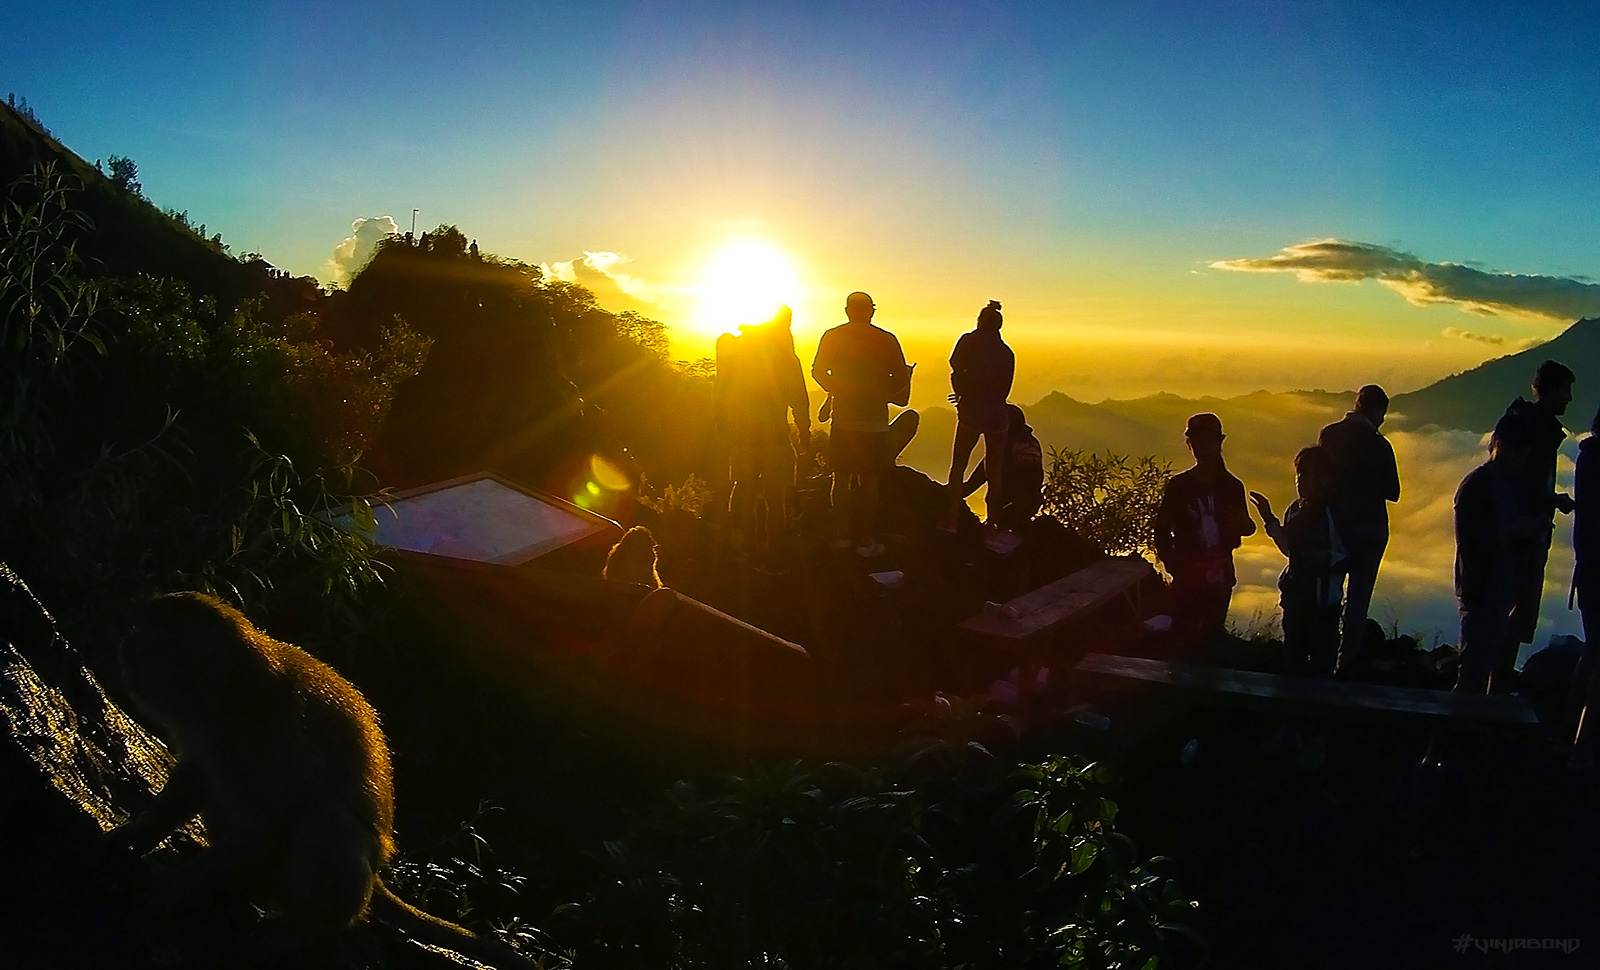 Mount Batur with Friends at Sunrise /// Vinjabond